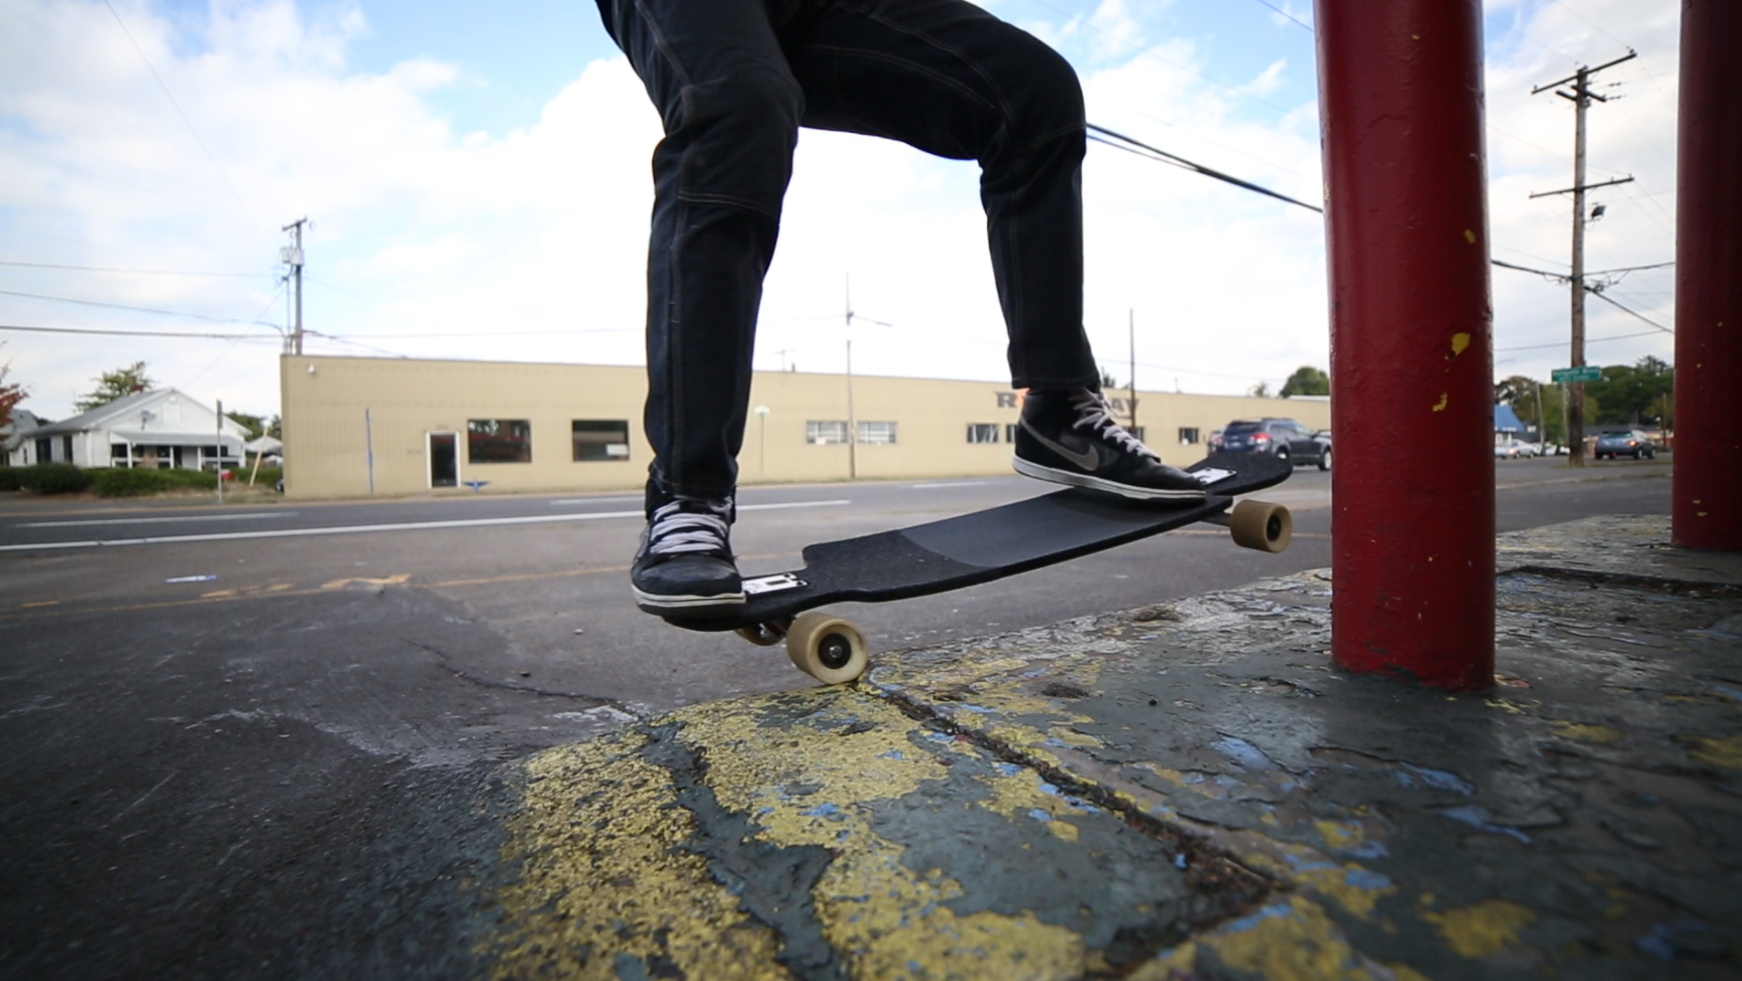 Riding up onto a curb and grinding frontside.